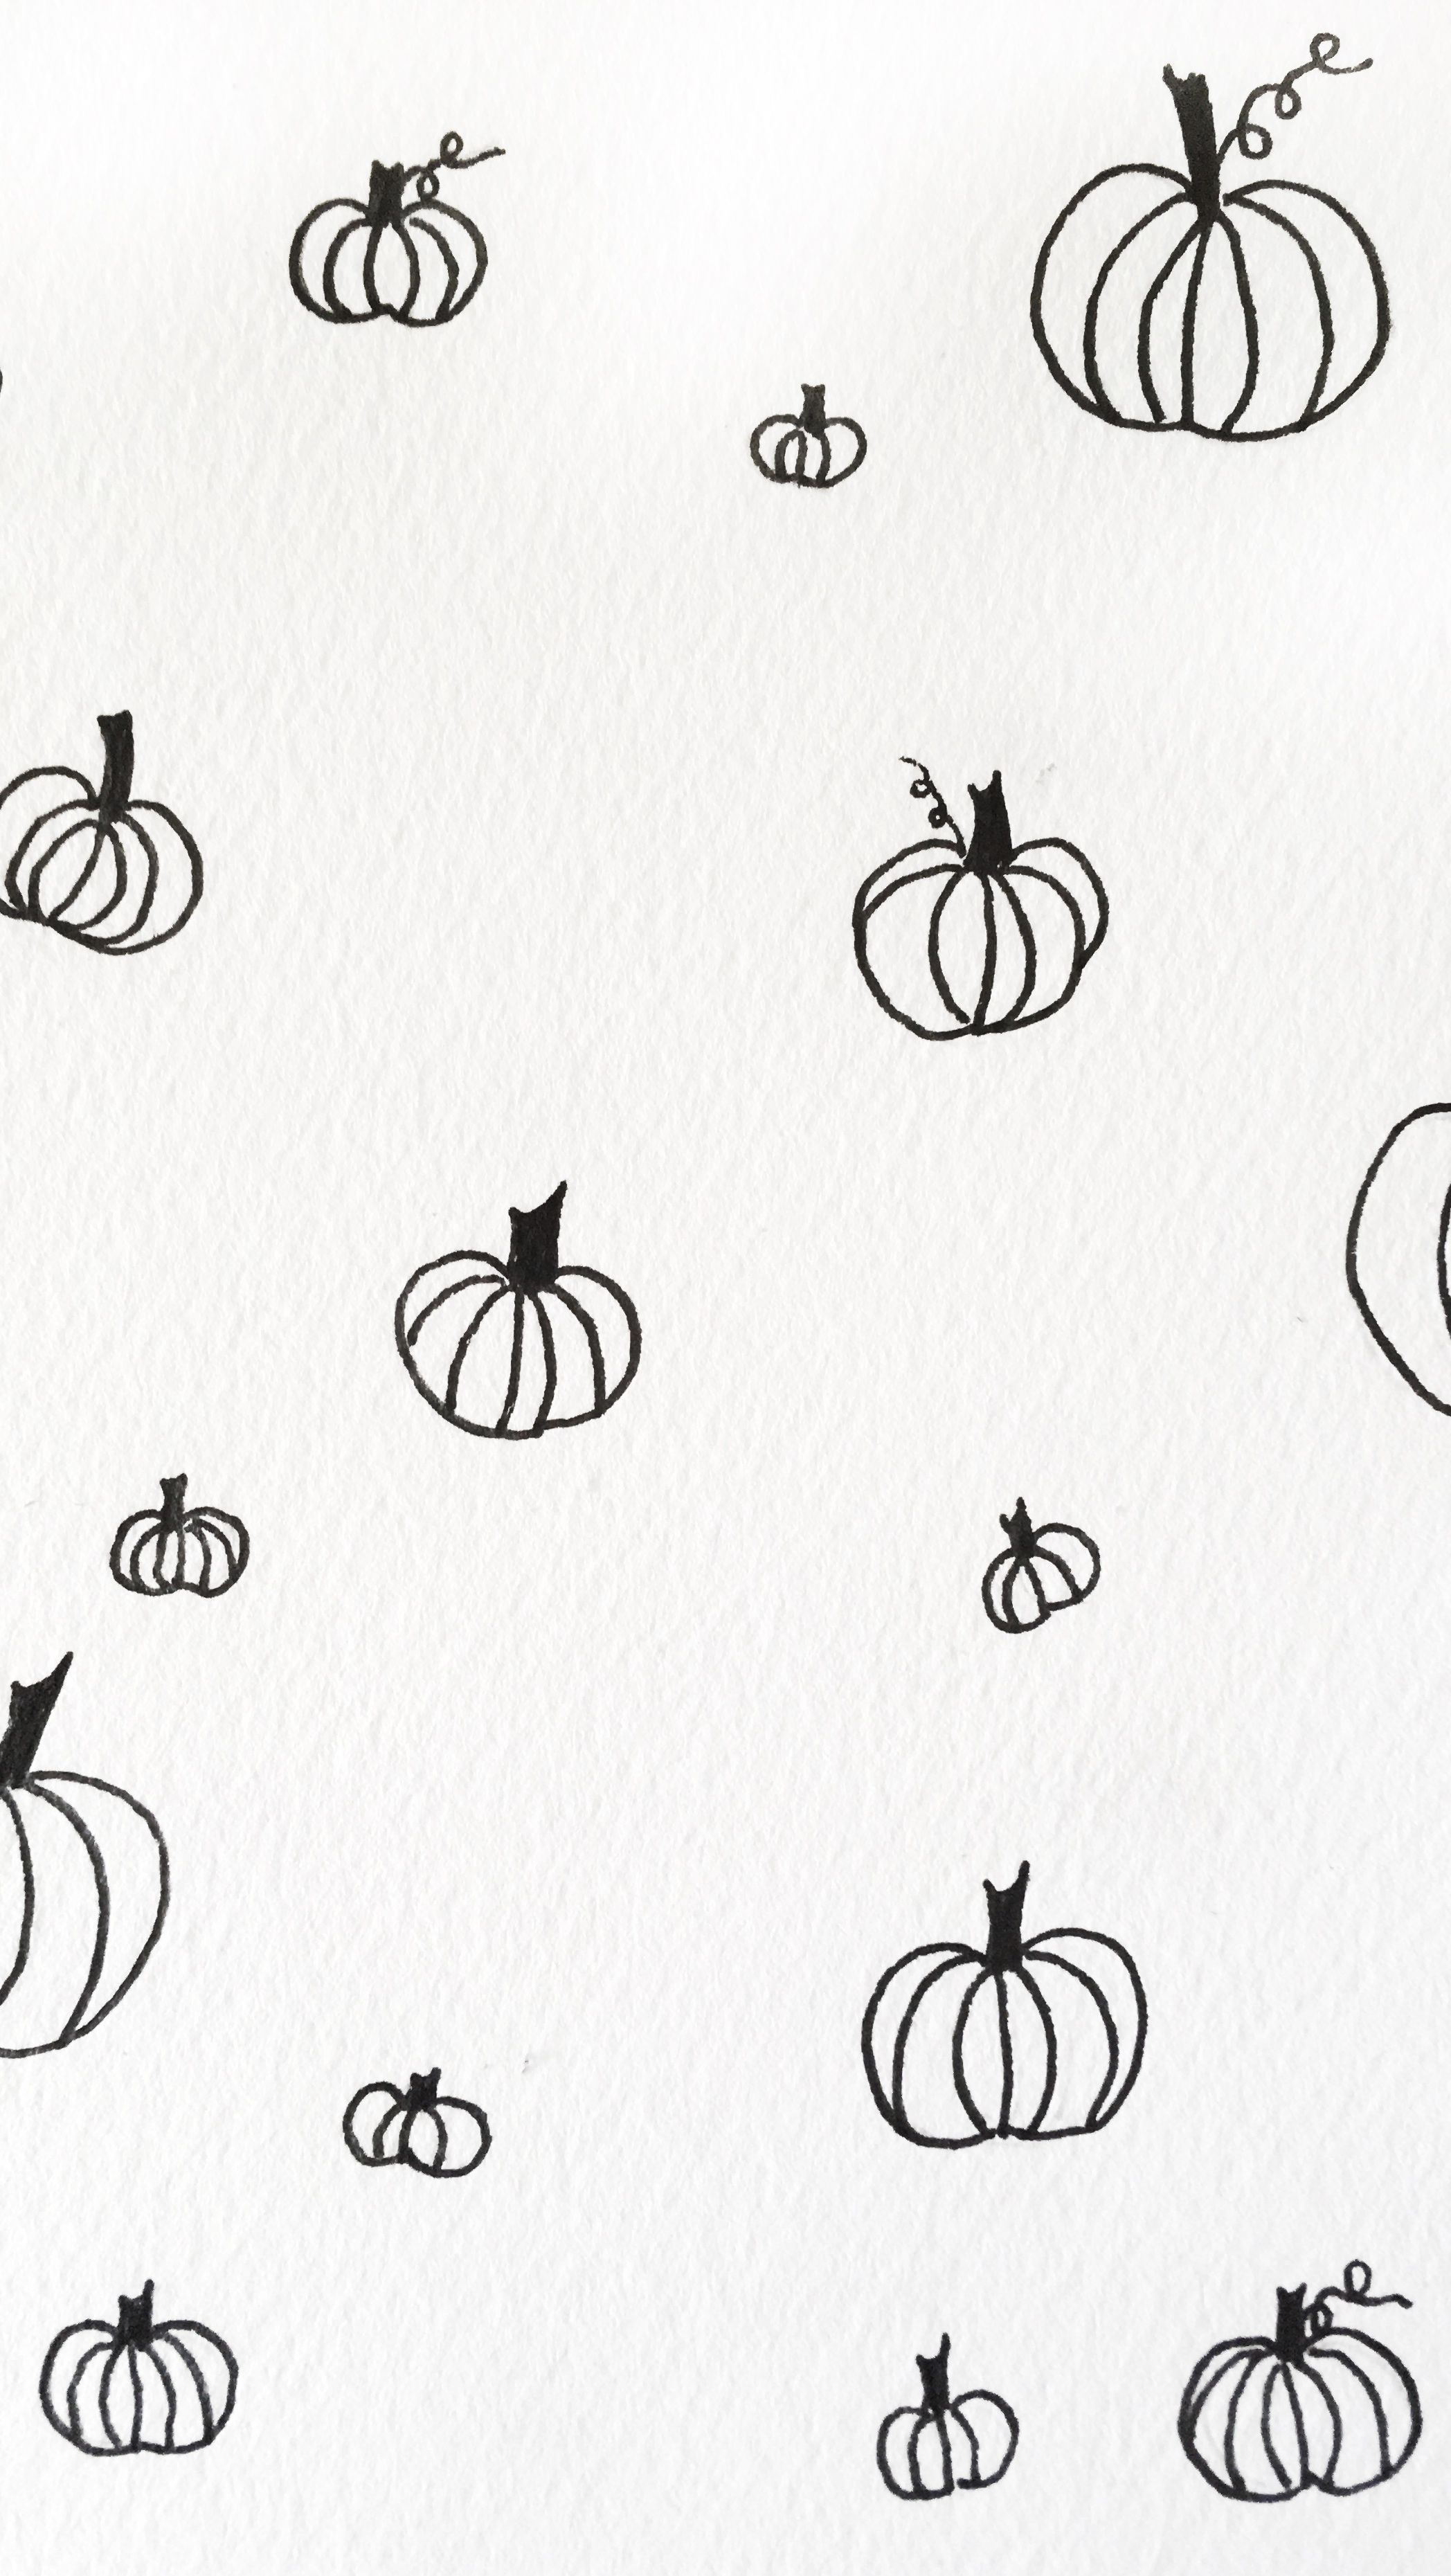 Black And White Pumpkin Iphone Watercolor Wallpaper Watercolor Wallpaper Iphone Halloween Wallpaper Iphone Black And White Wallpaper Iphone